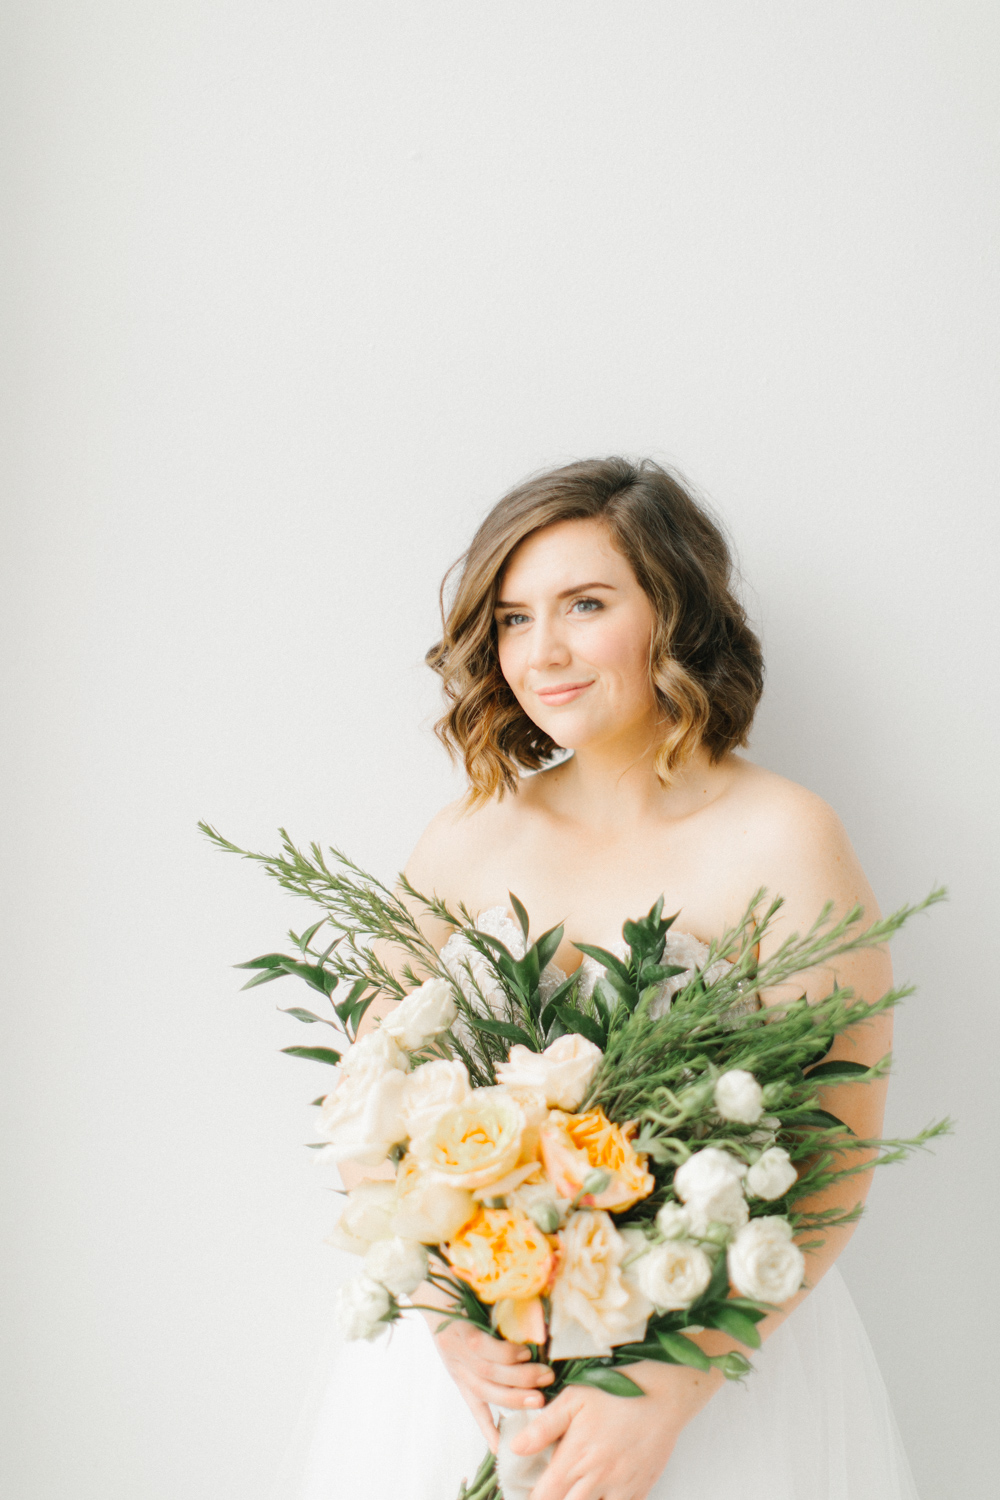 Seattle Fine Art Wedding Photographer | Seattle Downtown White Studio Bridal Session | Stunning Wedding Bouquet | Seattle Bride | Seattle Wedding | Photography Studio Space | Emma Rose Company Wedding Photography-17.jpg